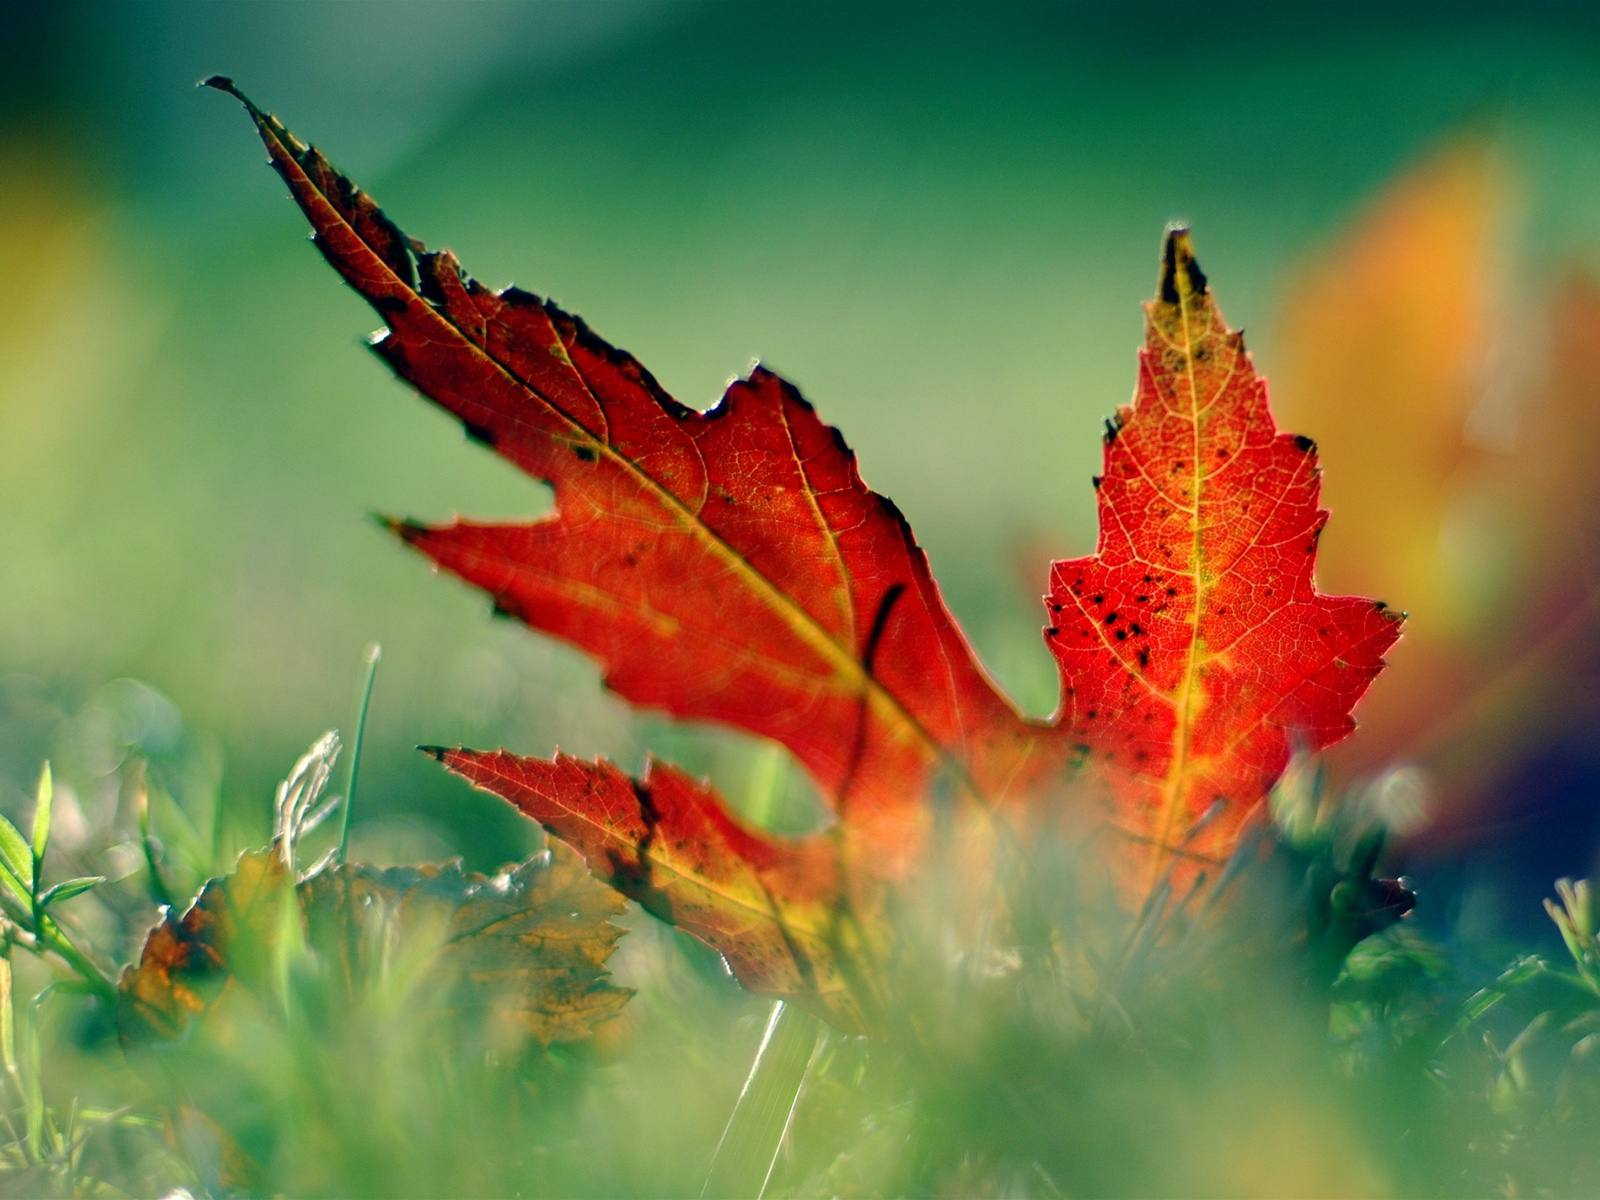 Free autumn wallpaper featuring a red leaf in the grass.